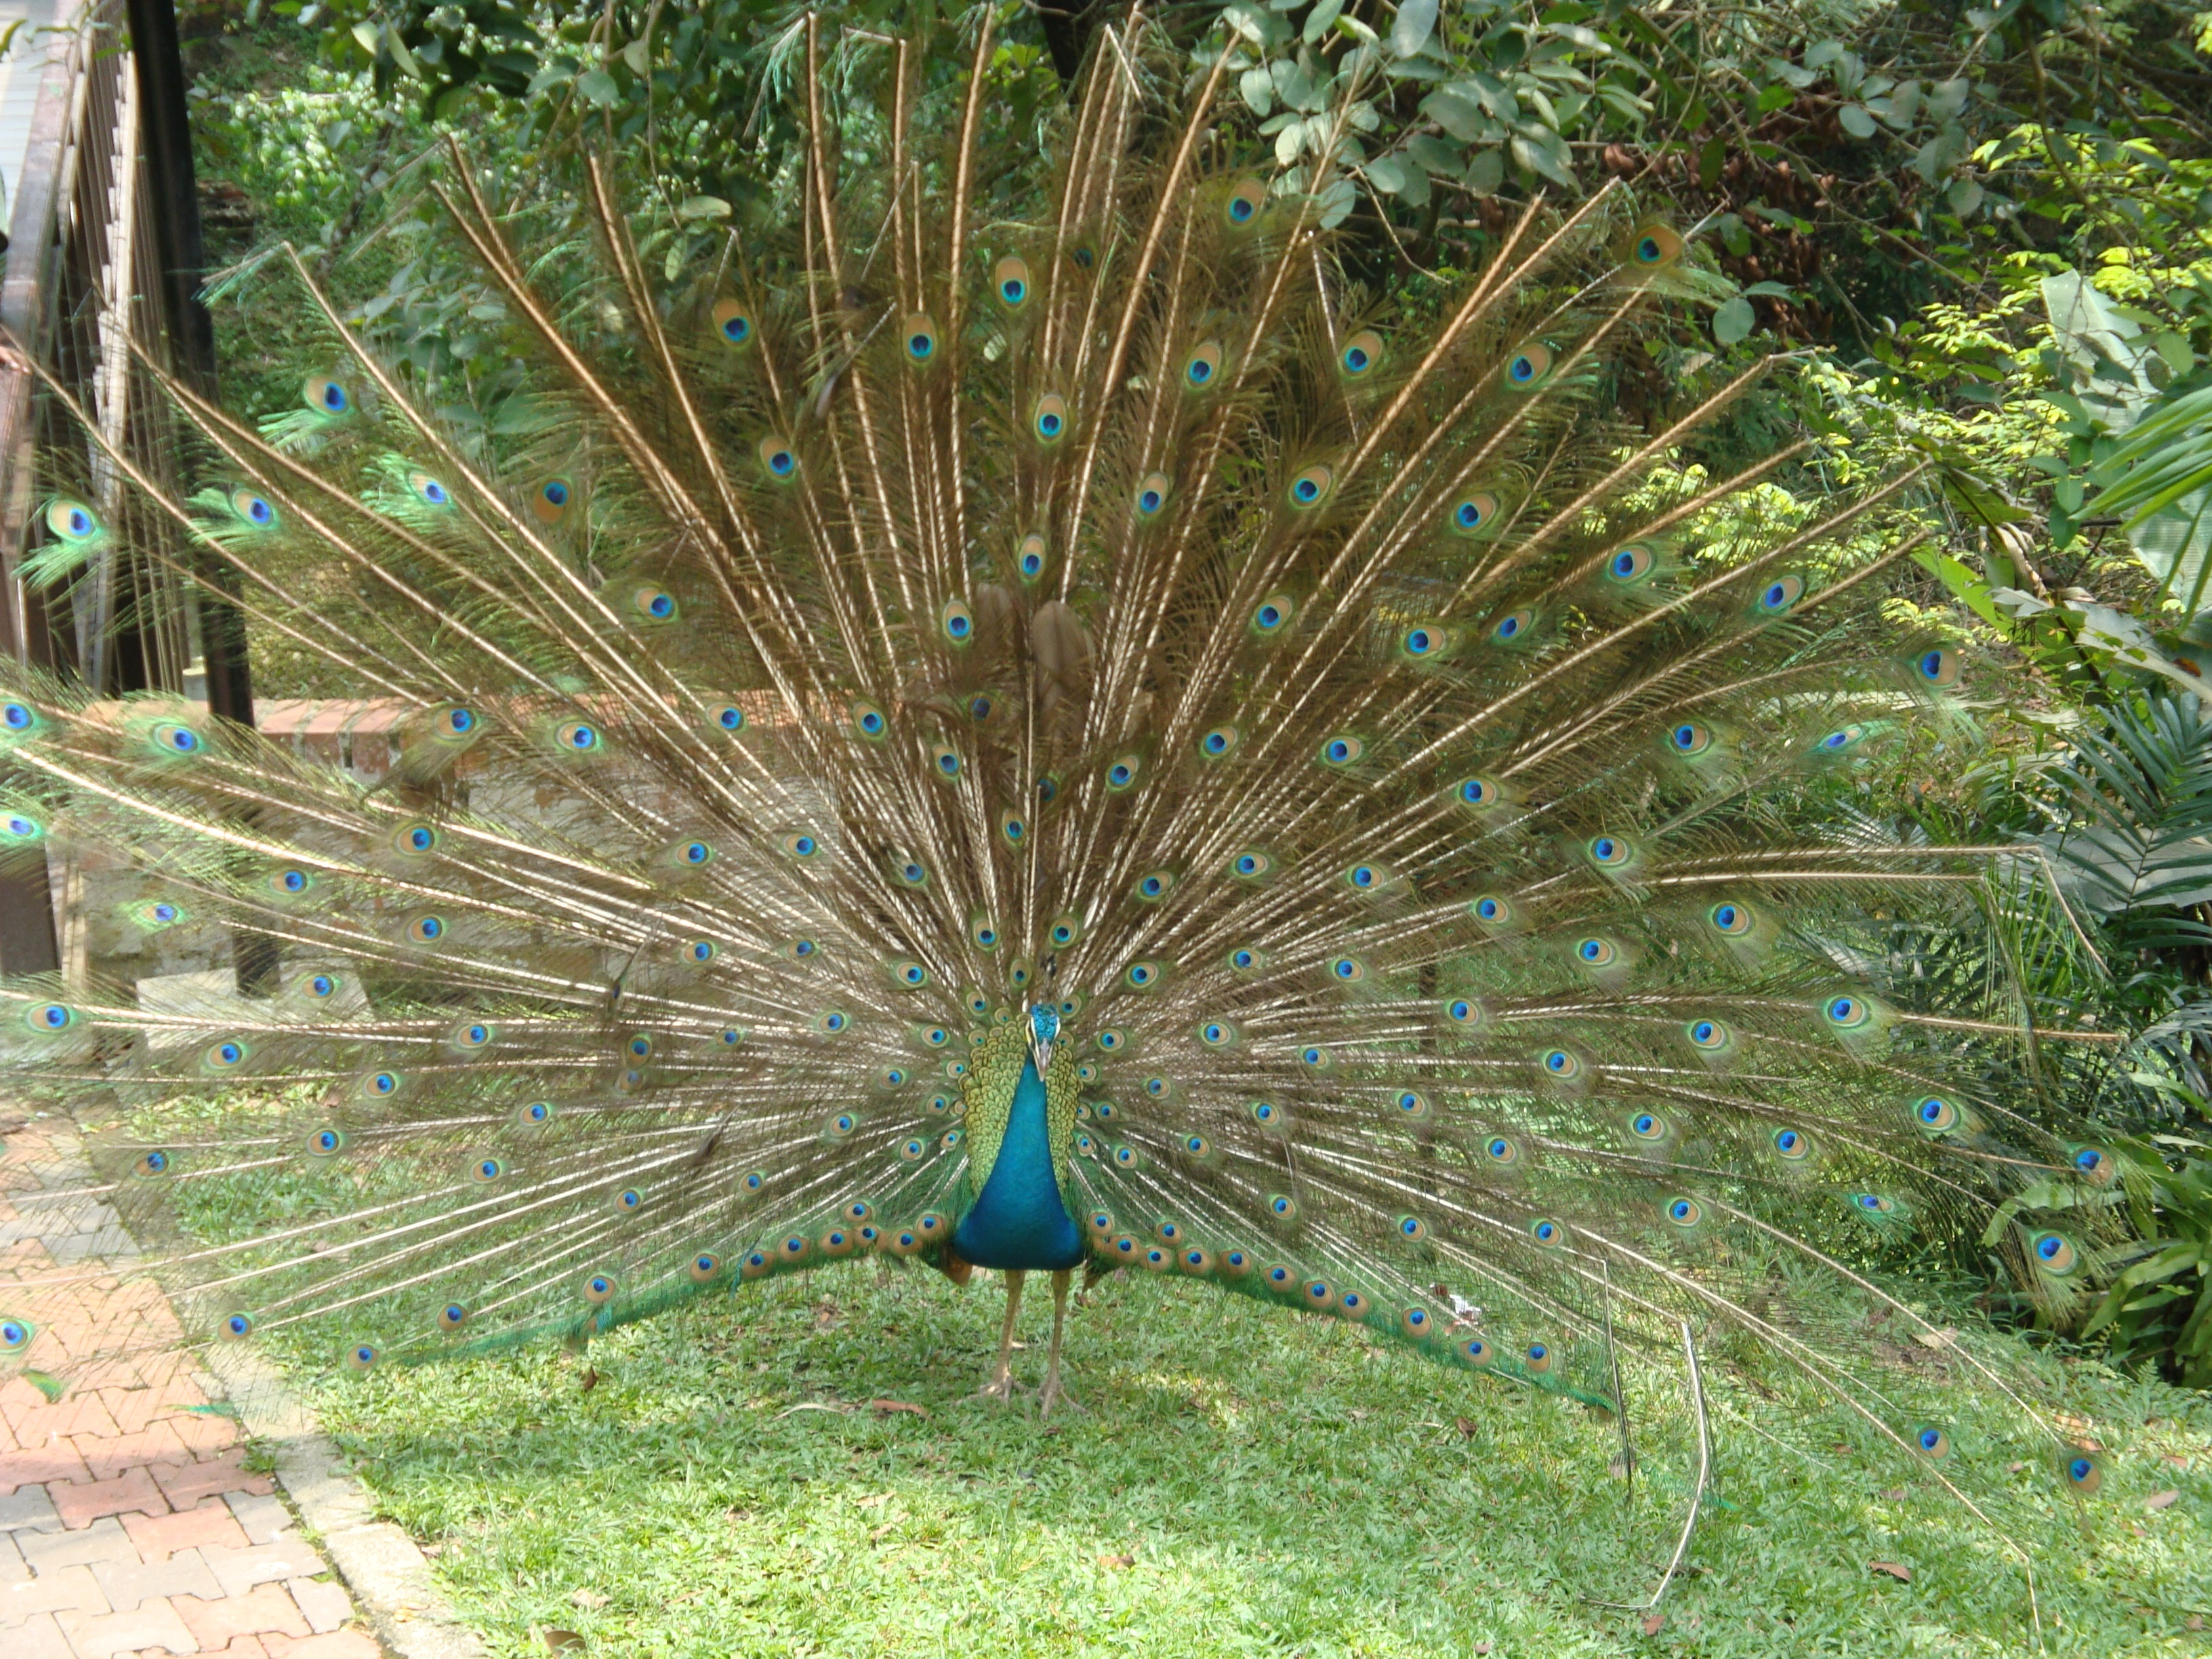 Peacock, tail spread.